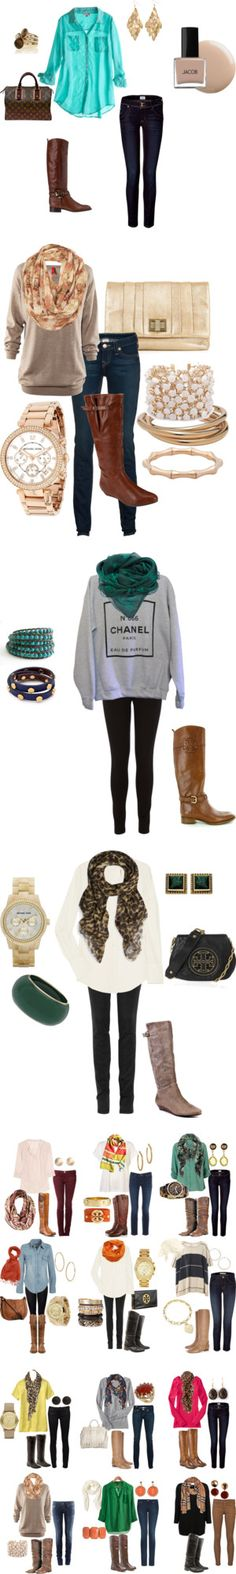 """Boots"" by blairbordonaro ❤ liked on Polyvore"